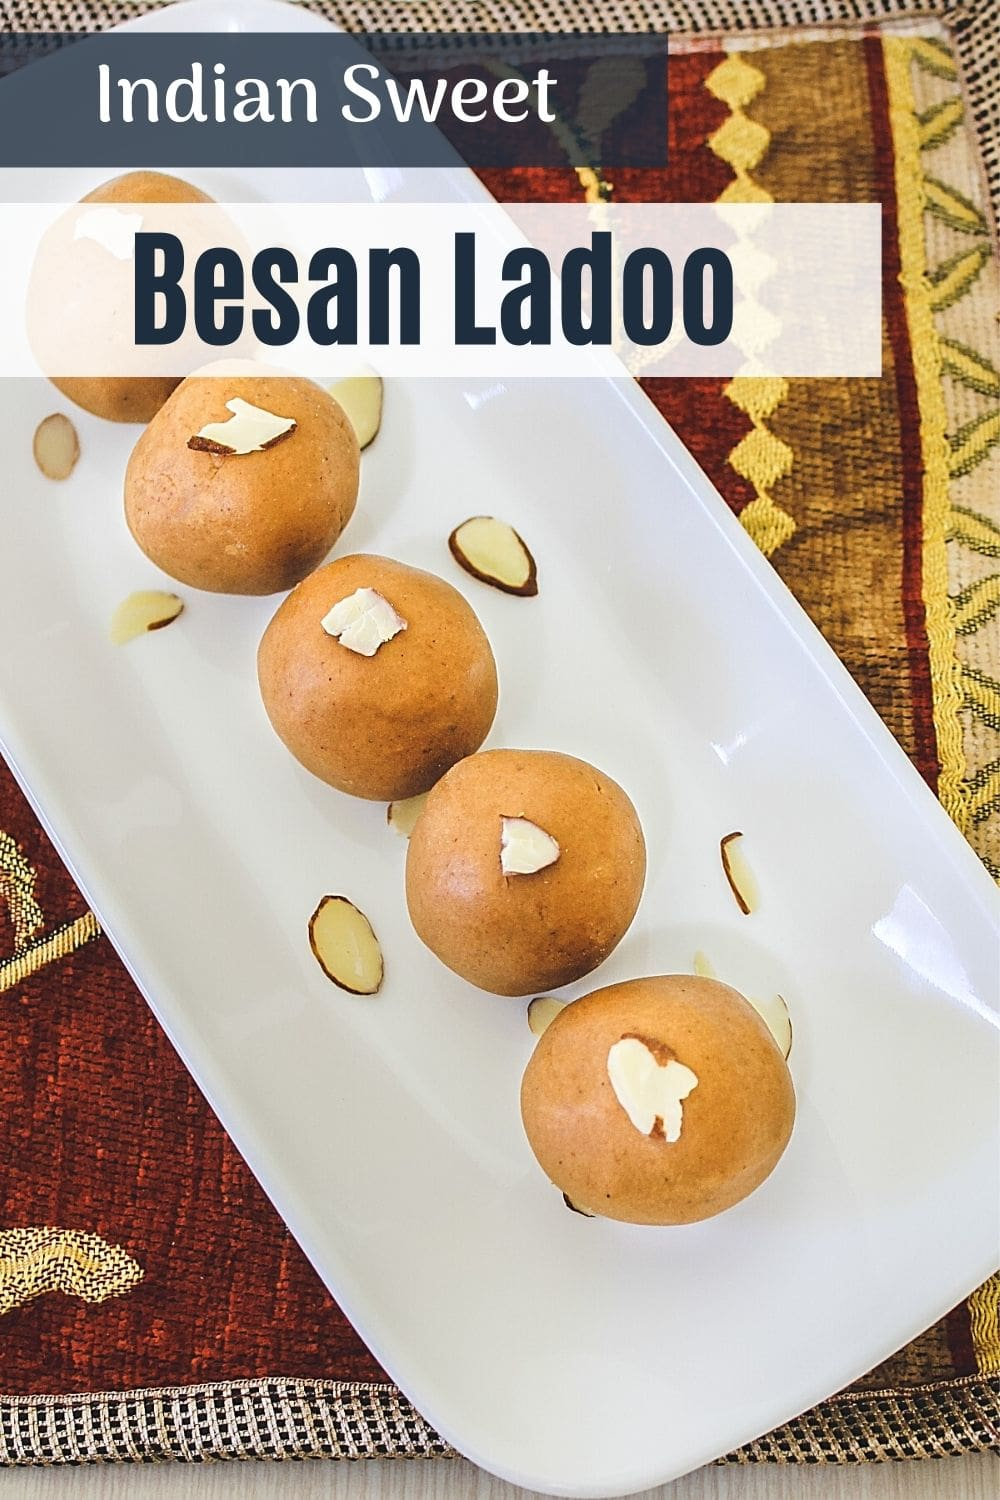 besan ladoo garnish with almonds on a plate with text on top of image